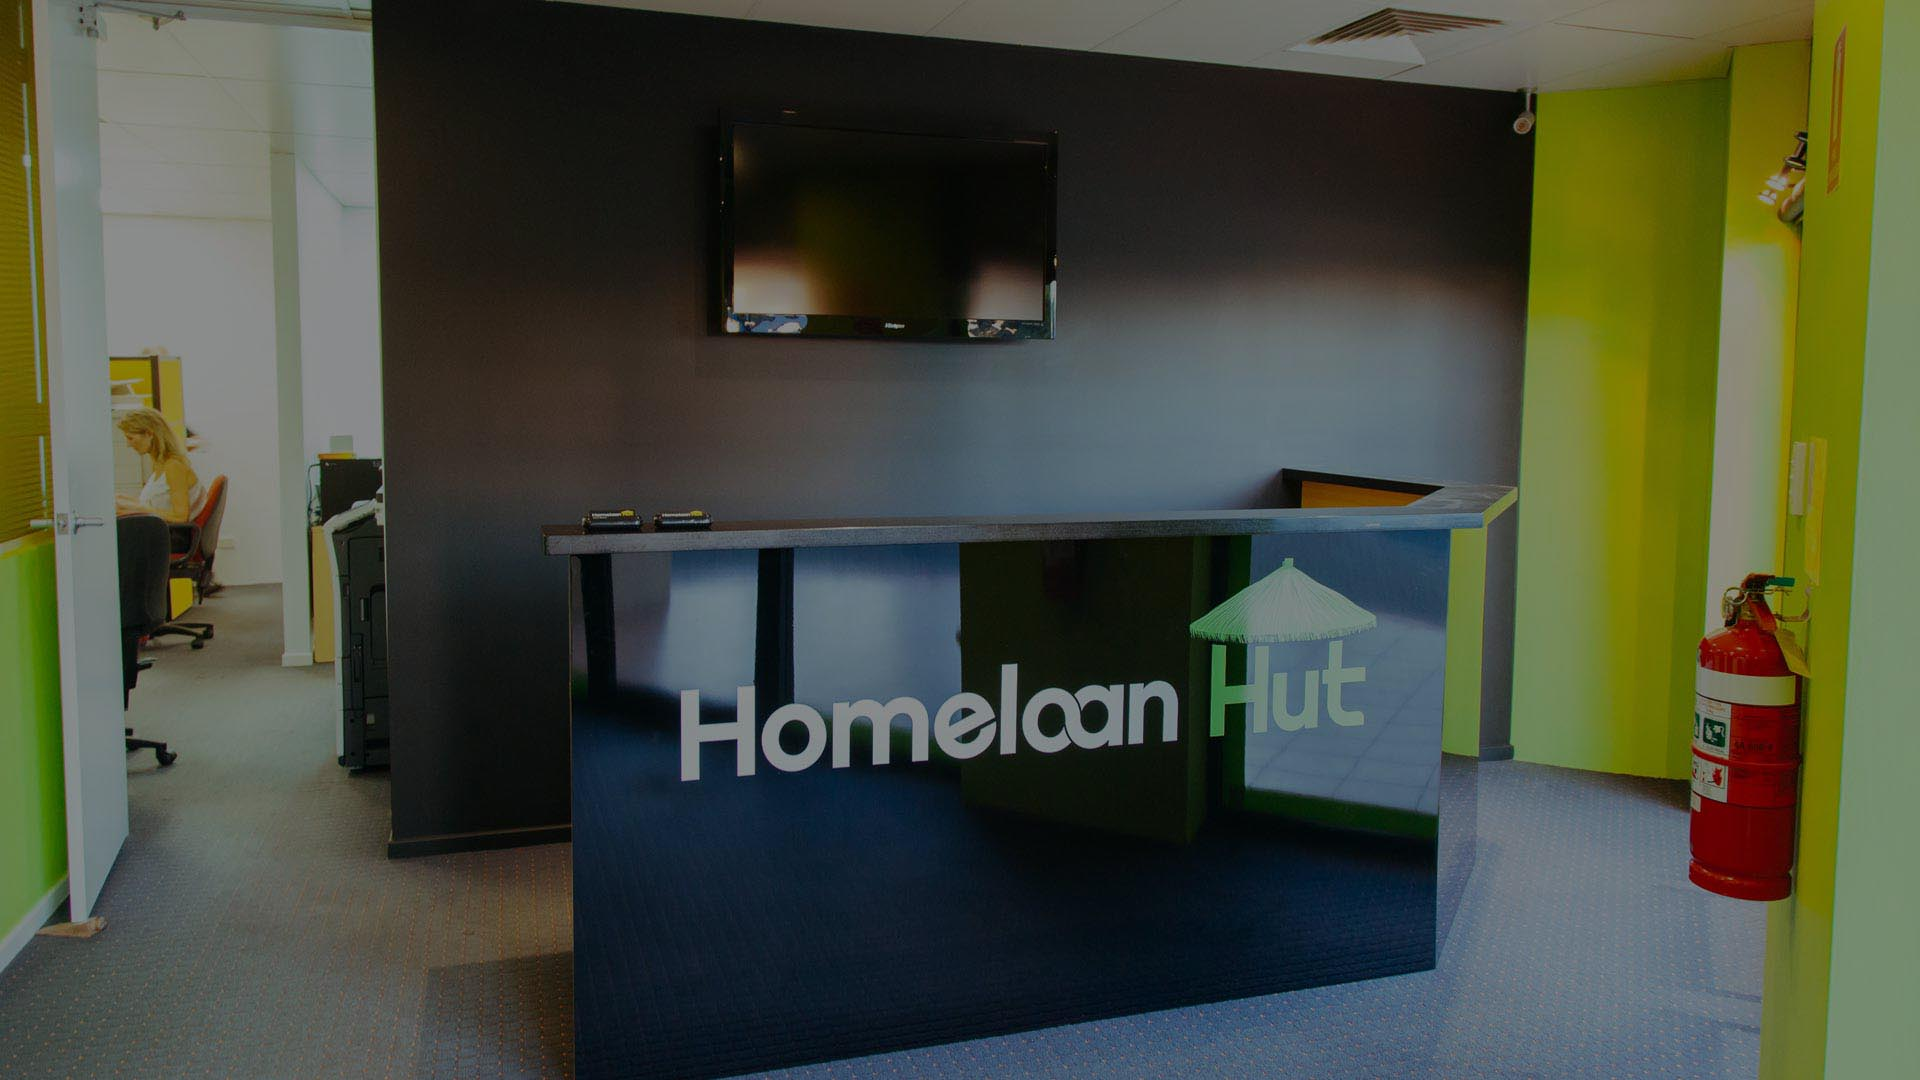 homeloan-hut-slider-trans-1920x1080-01